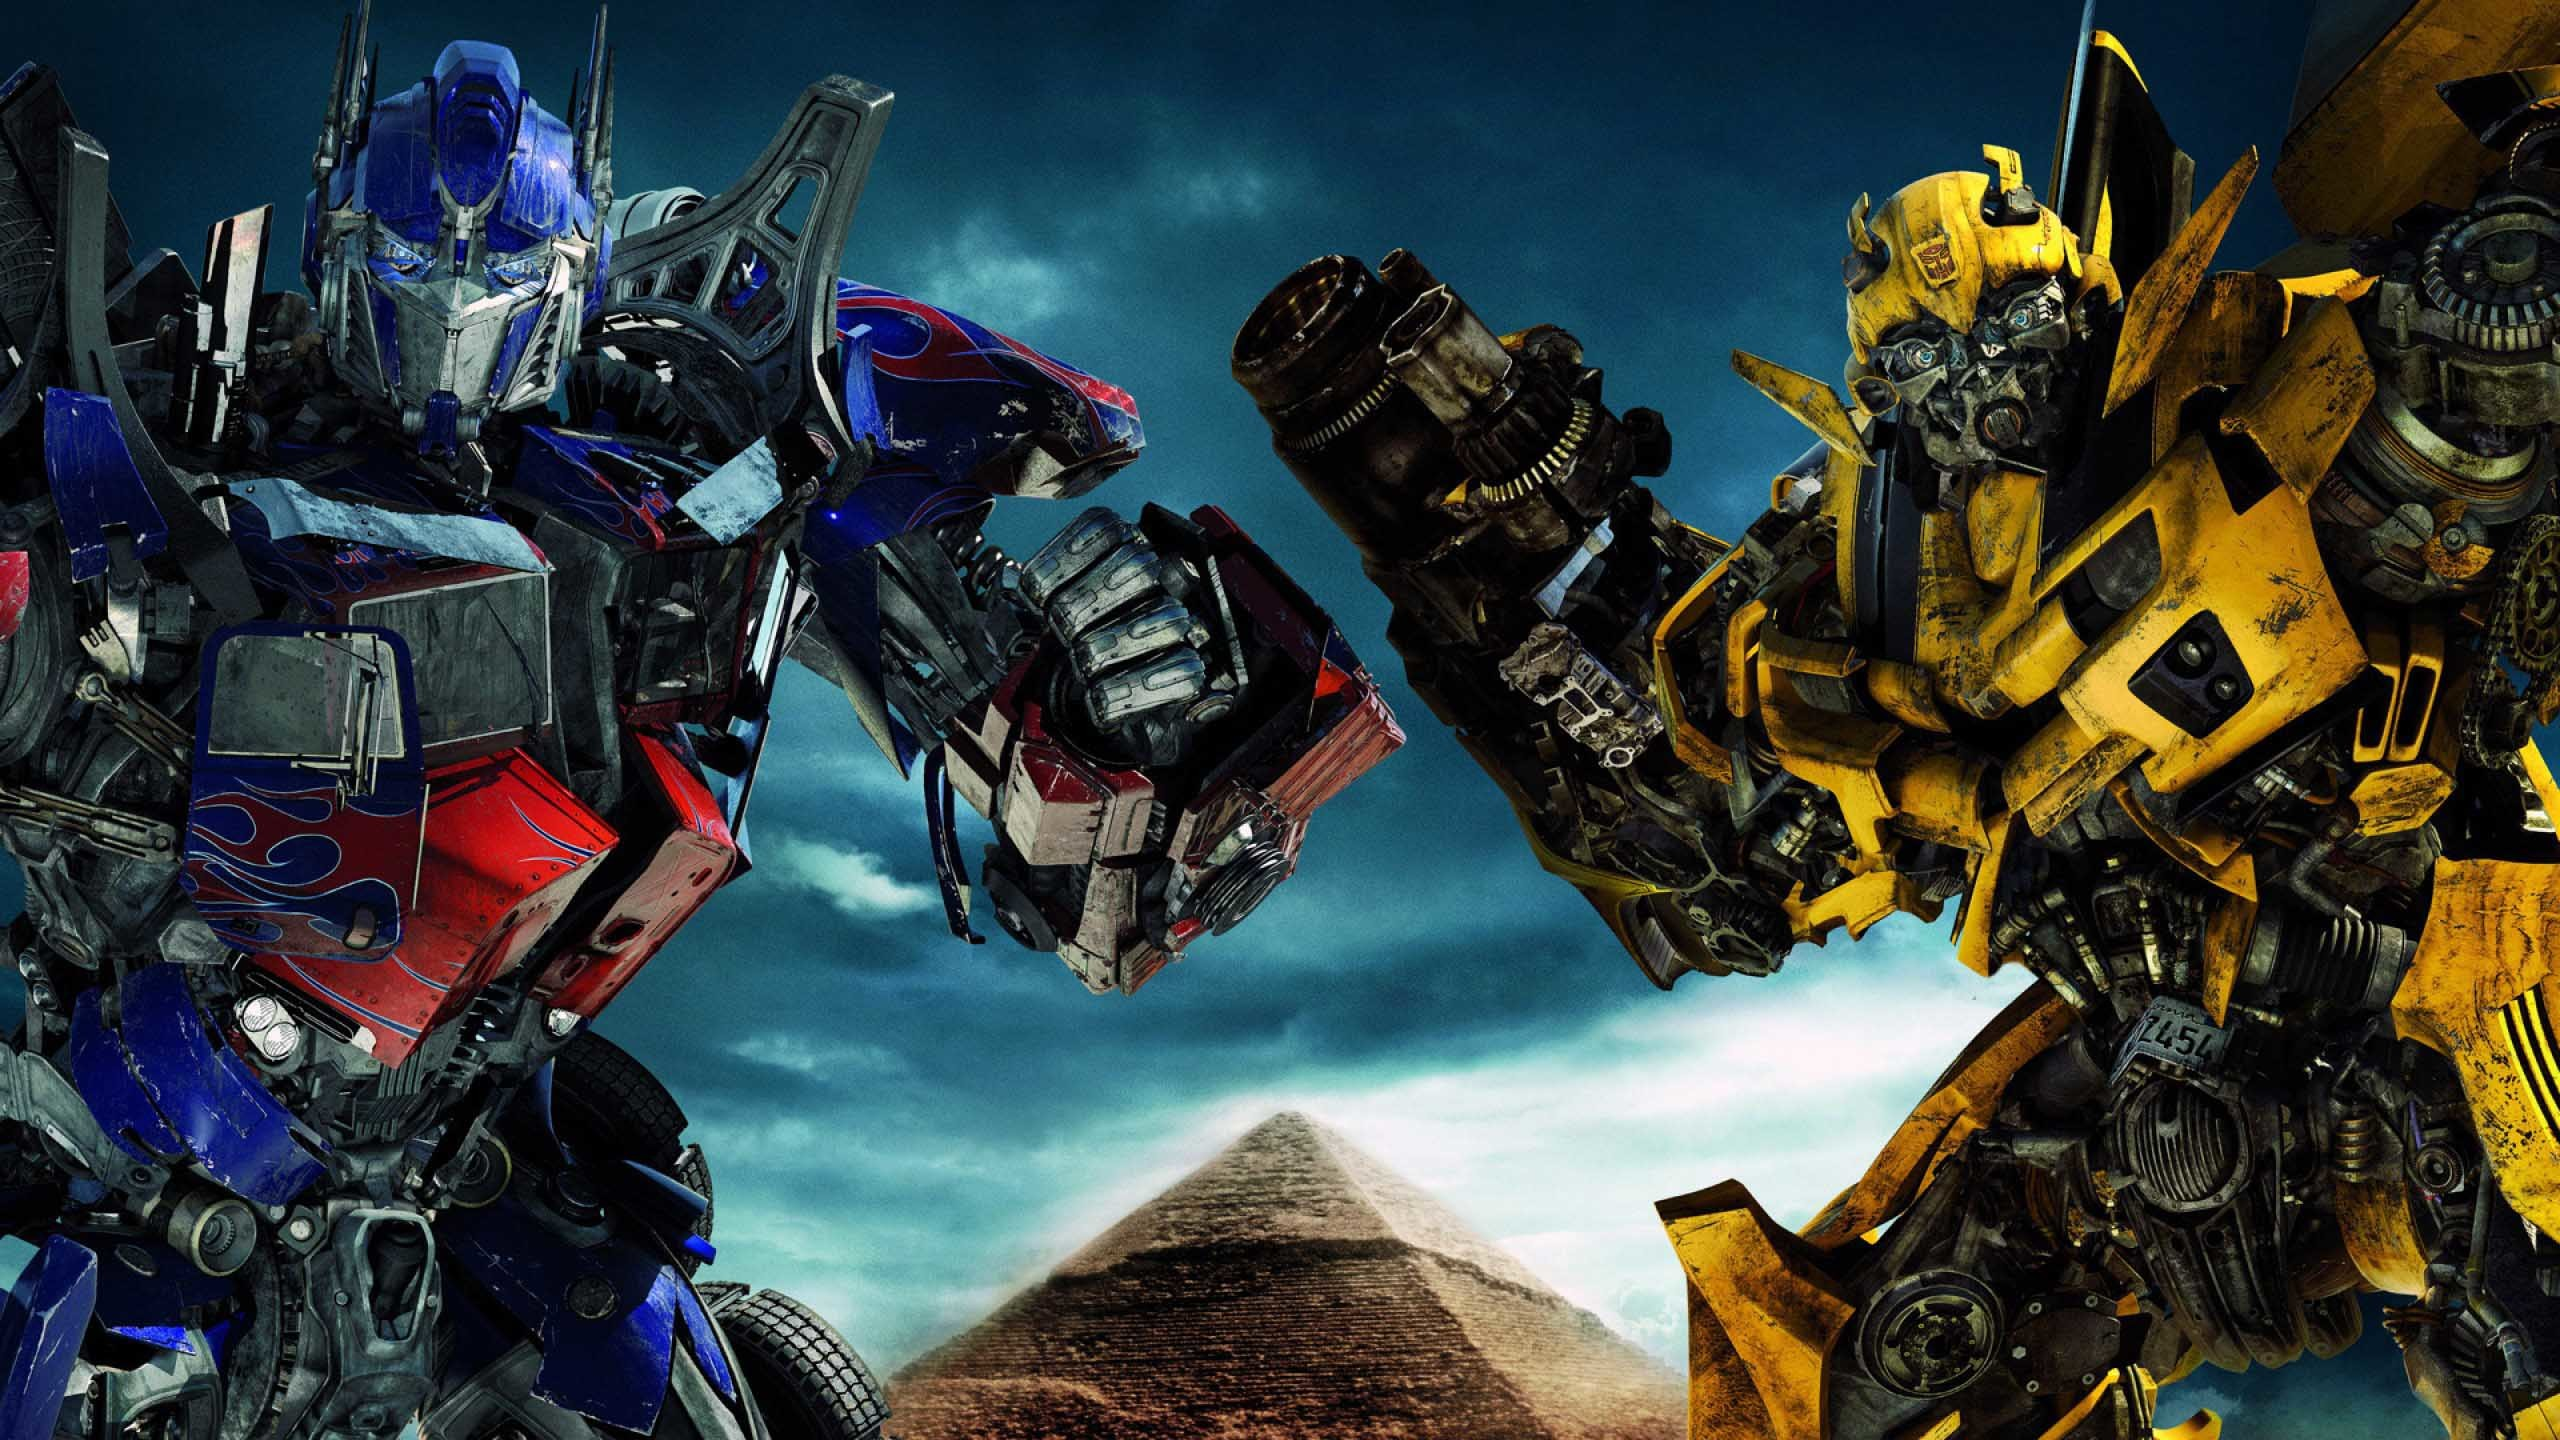 2560x1440 Transformers Wallpapers HD | Wallpapers, Backgrounds, Images, Art ..